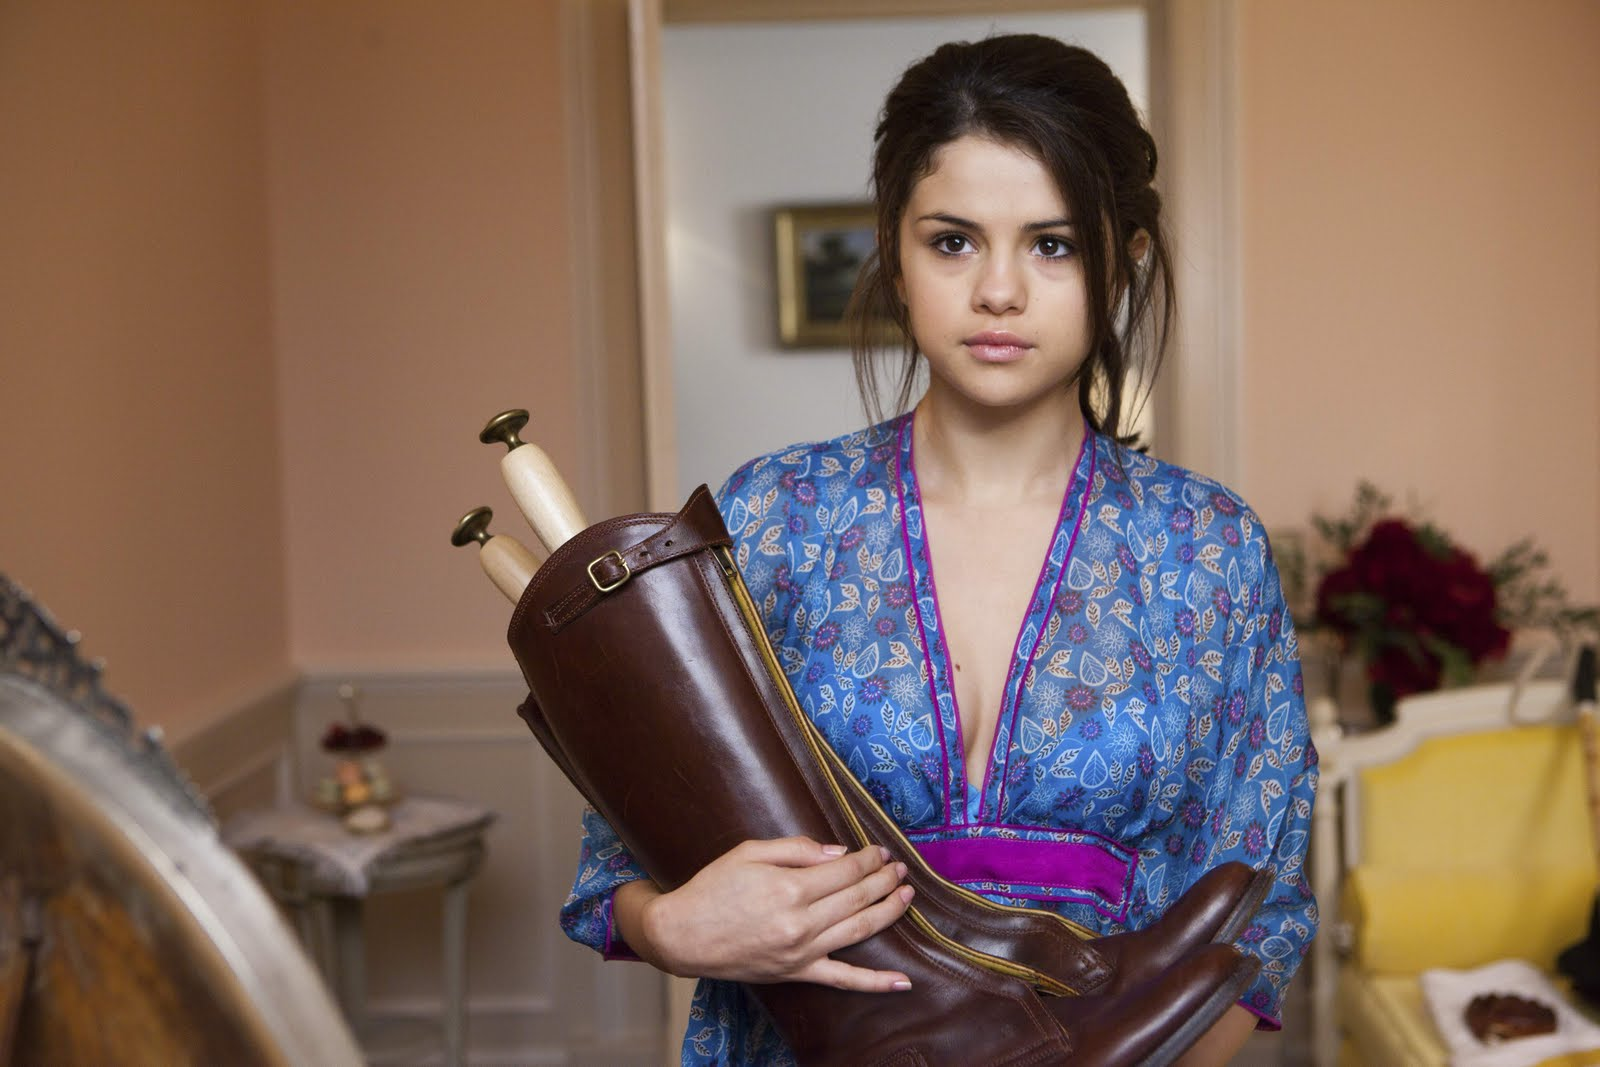 Monte Carlo - Selena Gomez Photo (24847568) - Fanpop